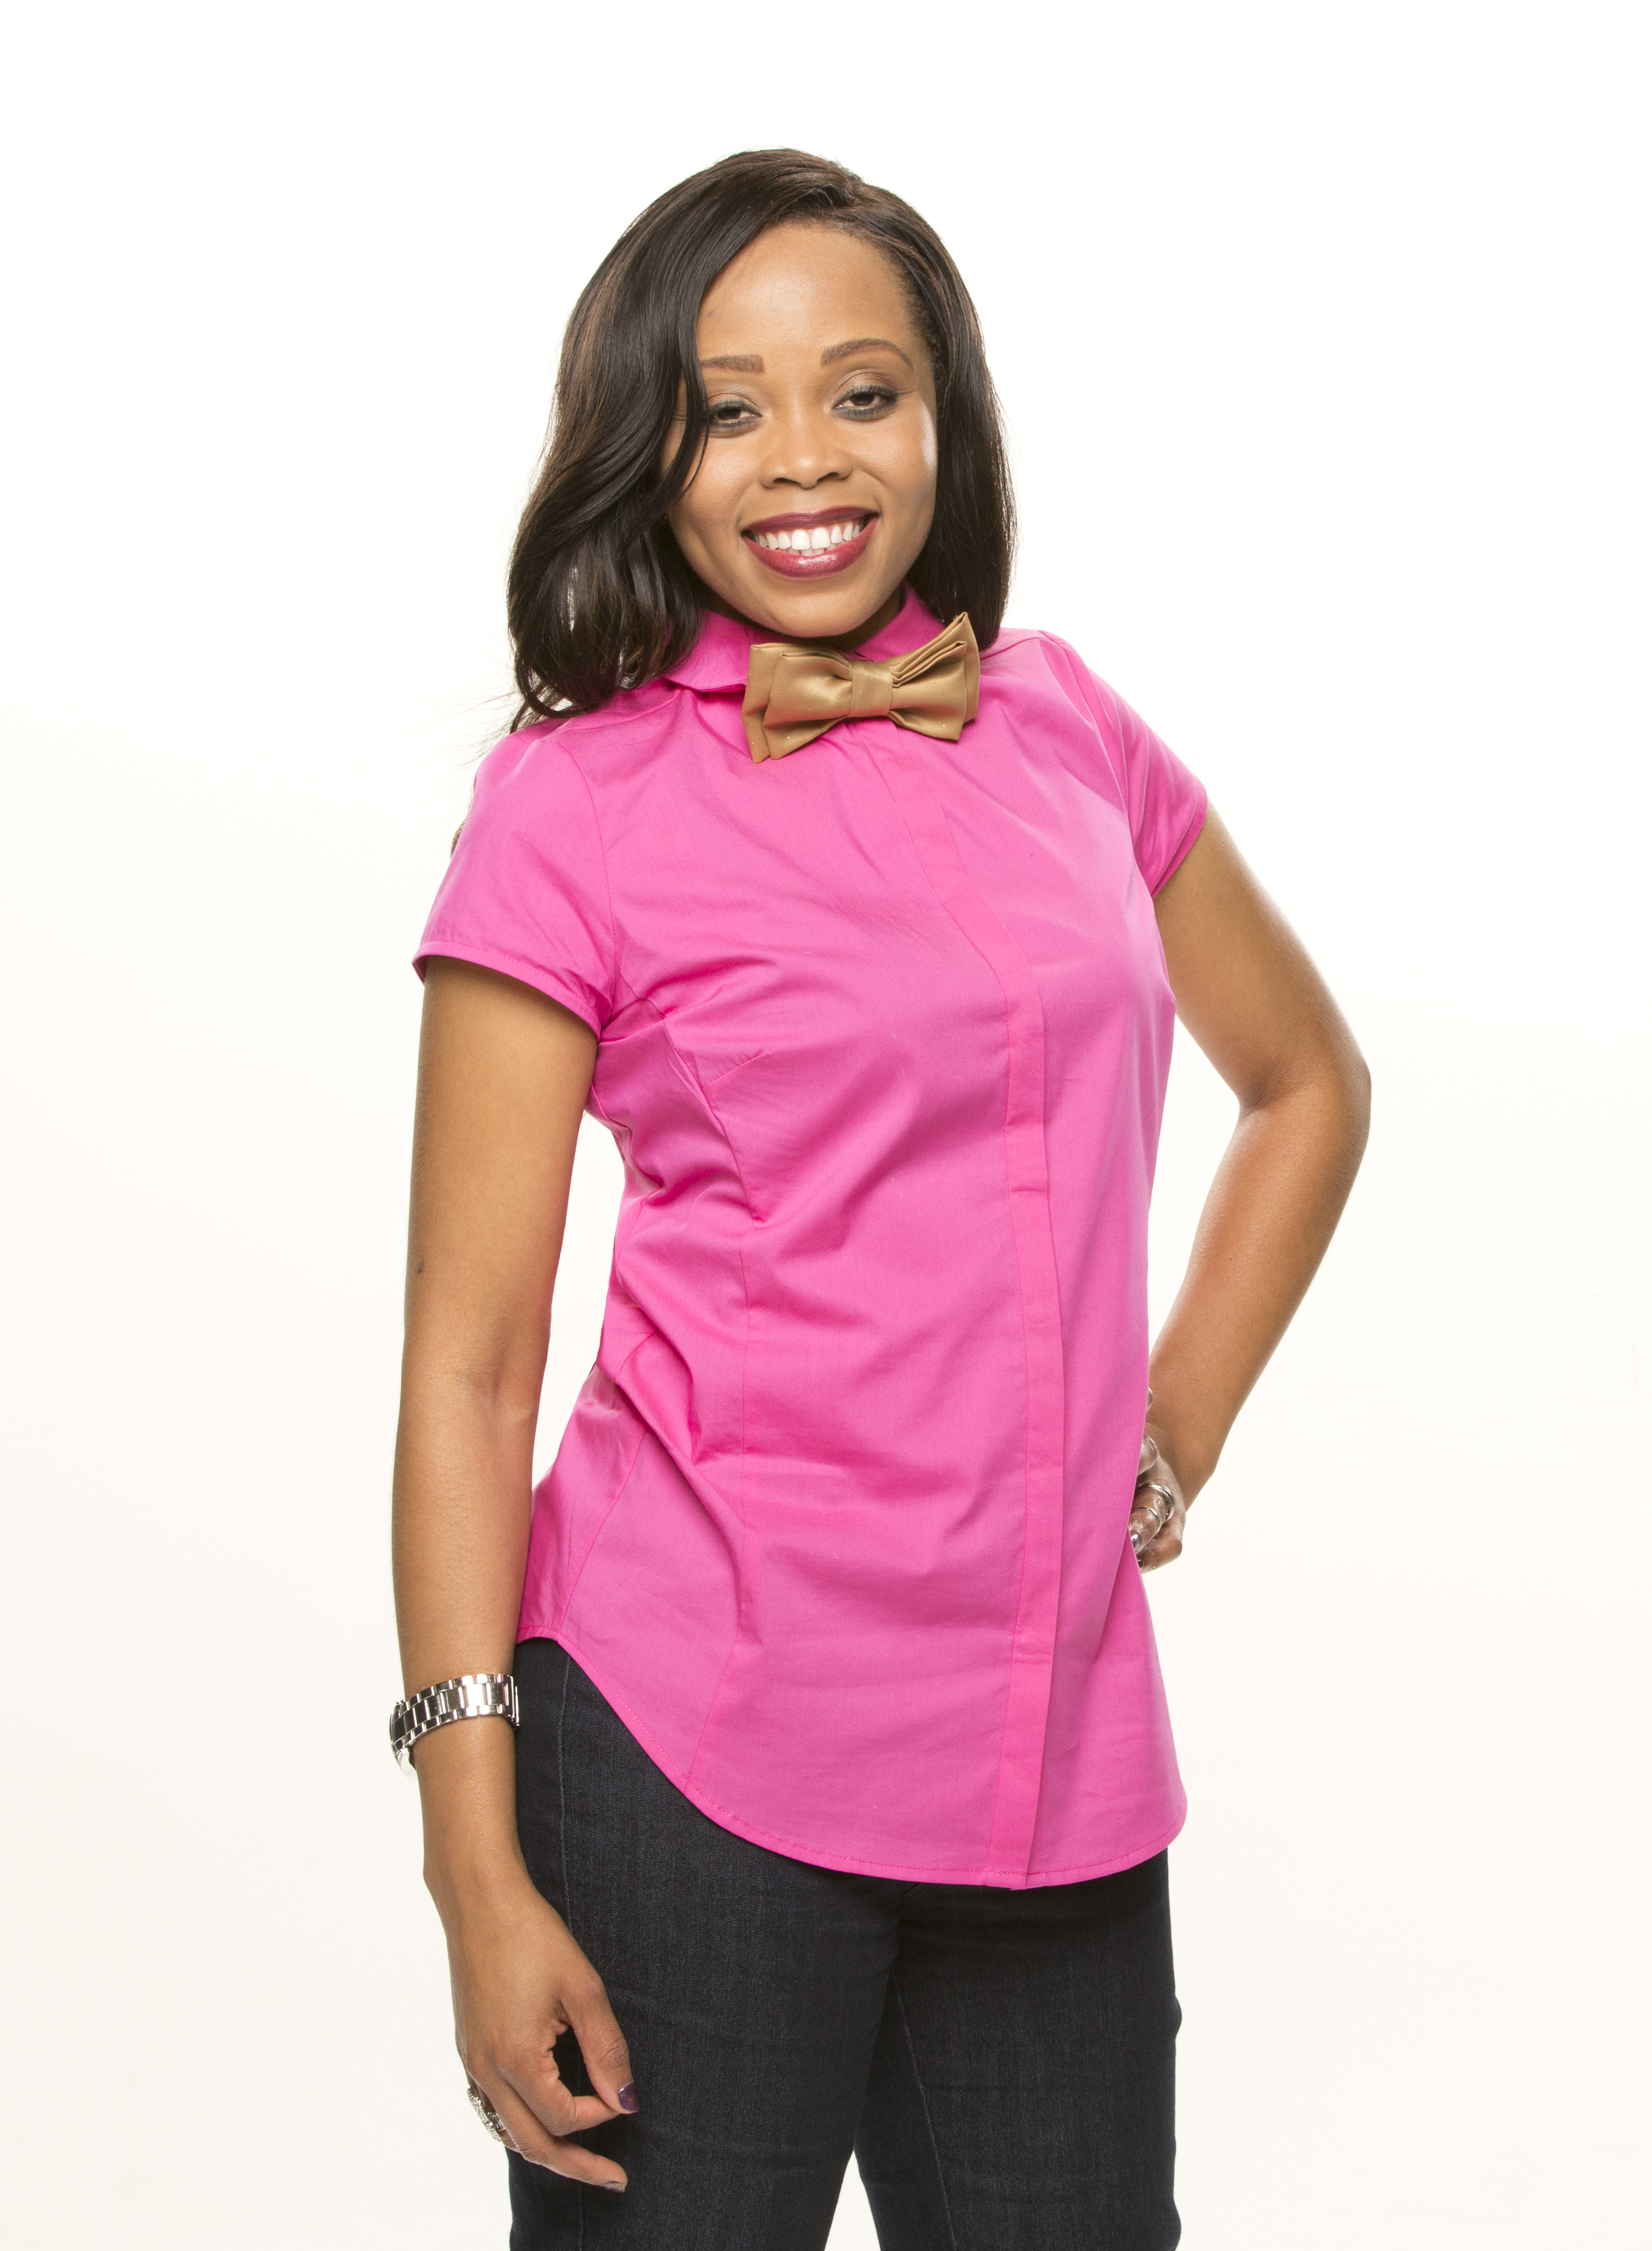 Jocasta Odom | Big Brother Wiki | FANDOM powered by Wikia